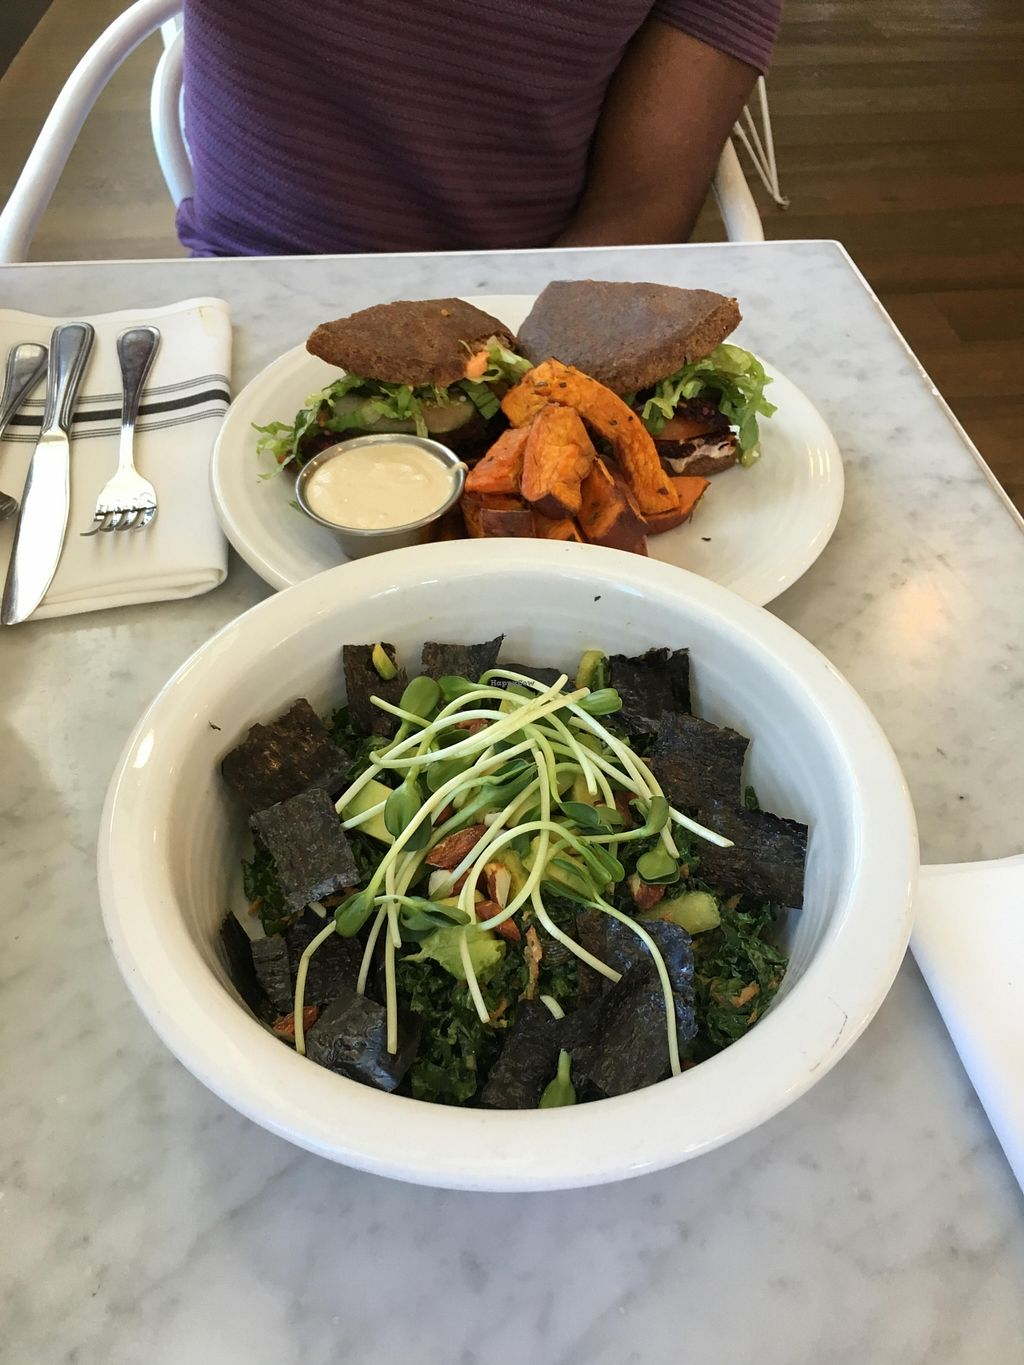 """Photo of Cafe Gratitude - DTLA  by <a href=""""/members/profile/veganzinga"""" class=""""title__title"""">veganzinga</a> <br/>Salad and burger <br/> December 31, 2015  - <a href='/contact/abuse/image/57026/130531'>Report</a>"""